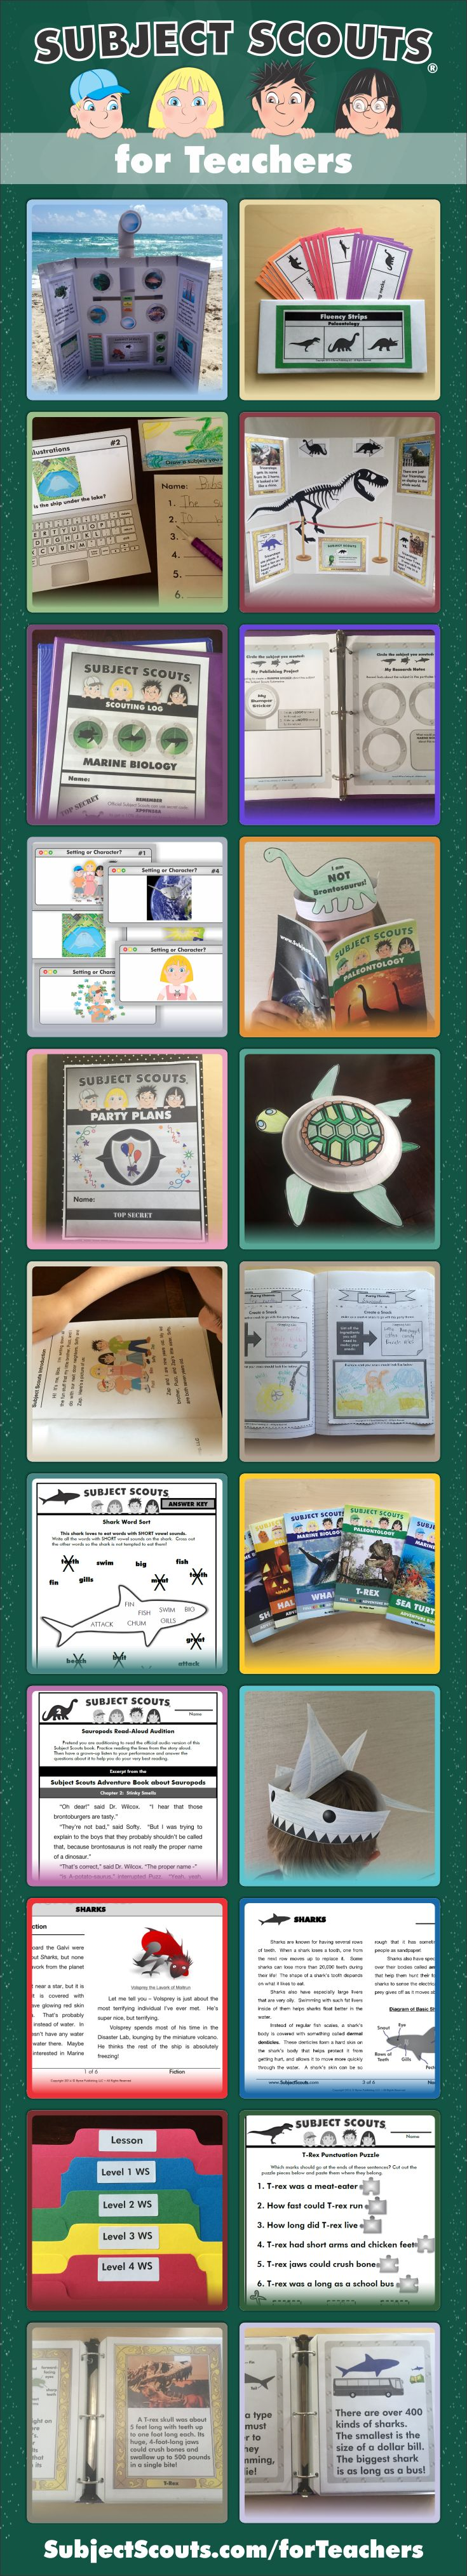 Subject Scouts® for Teachers provides texts, worksheets, writing centers, task cards, fluency strips, printable crafts and much more.